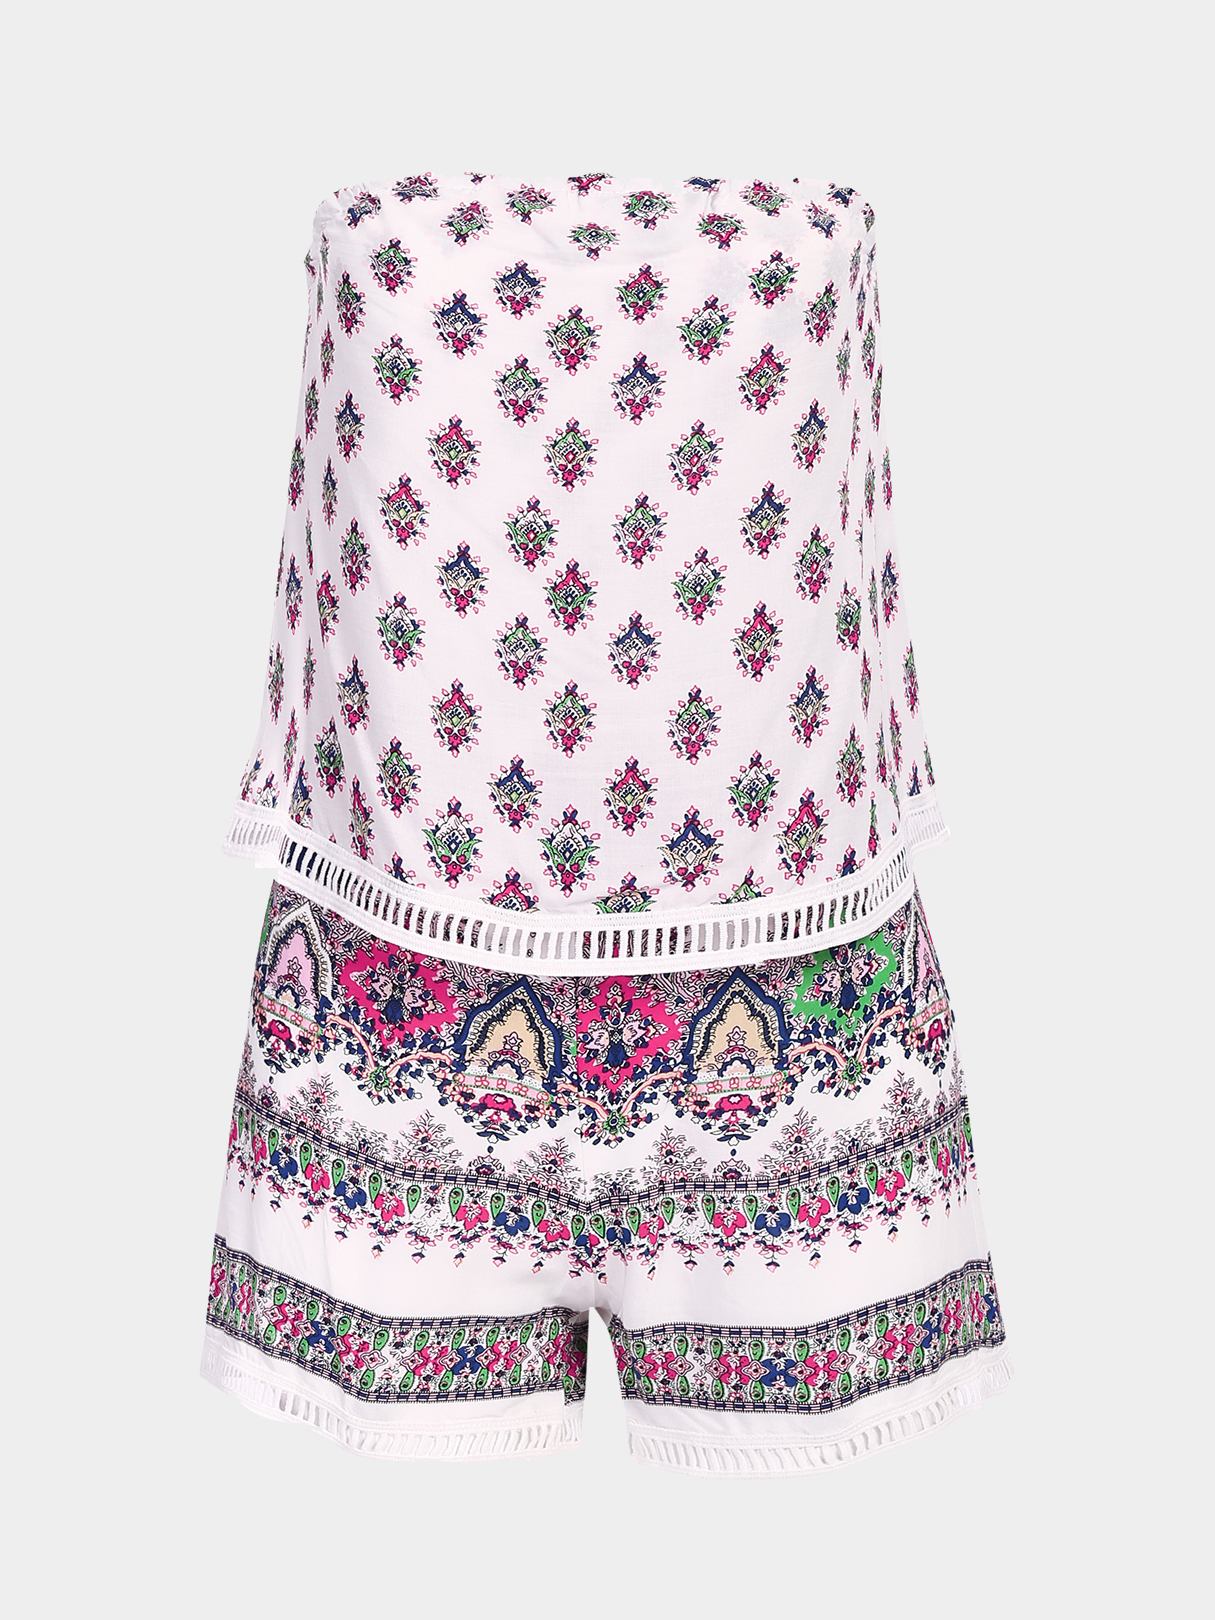 Bohemian Print Off The Shoulder Playsuit i want to go to the fair